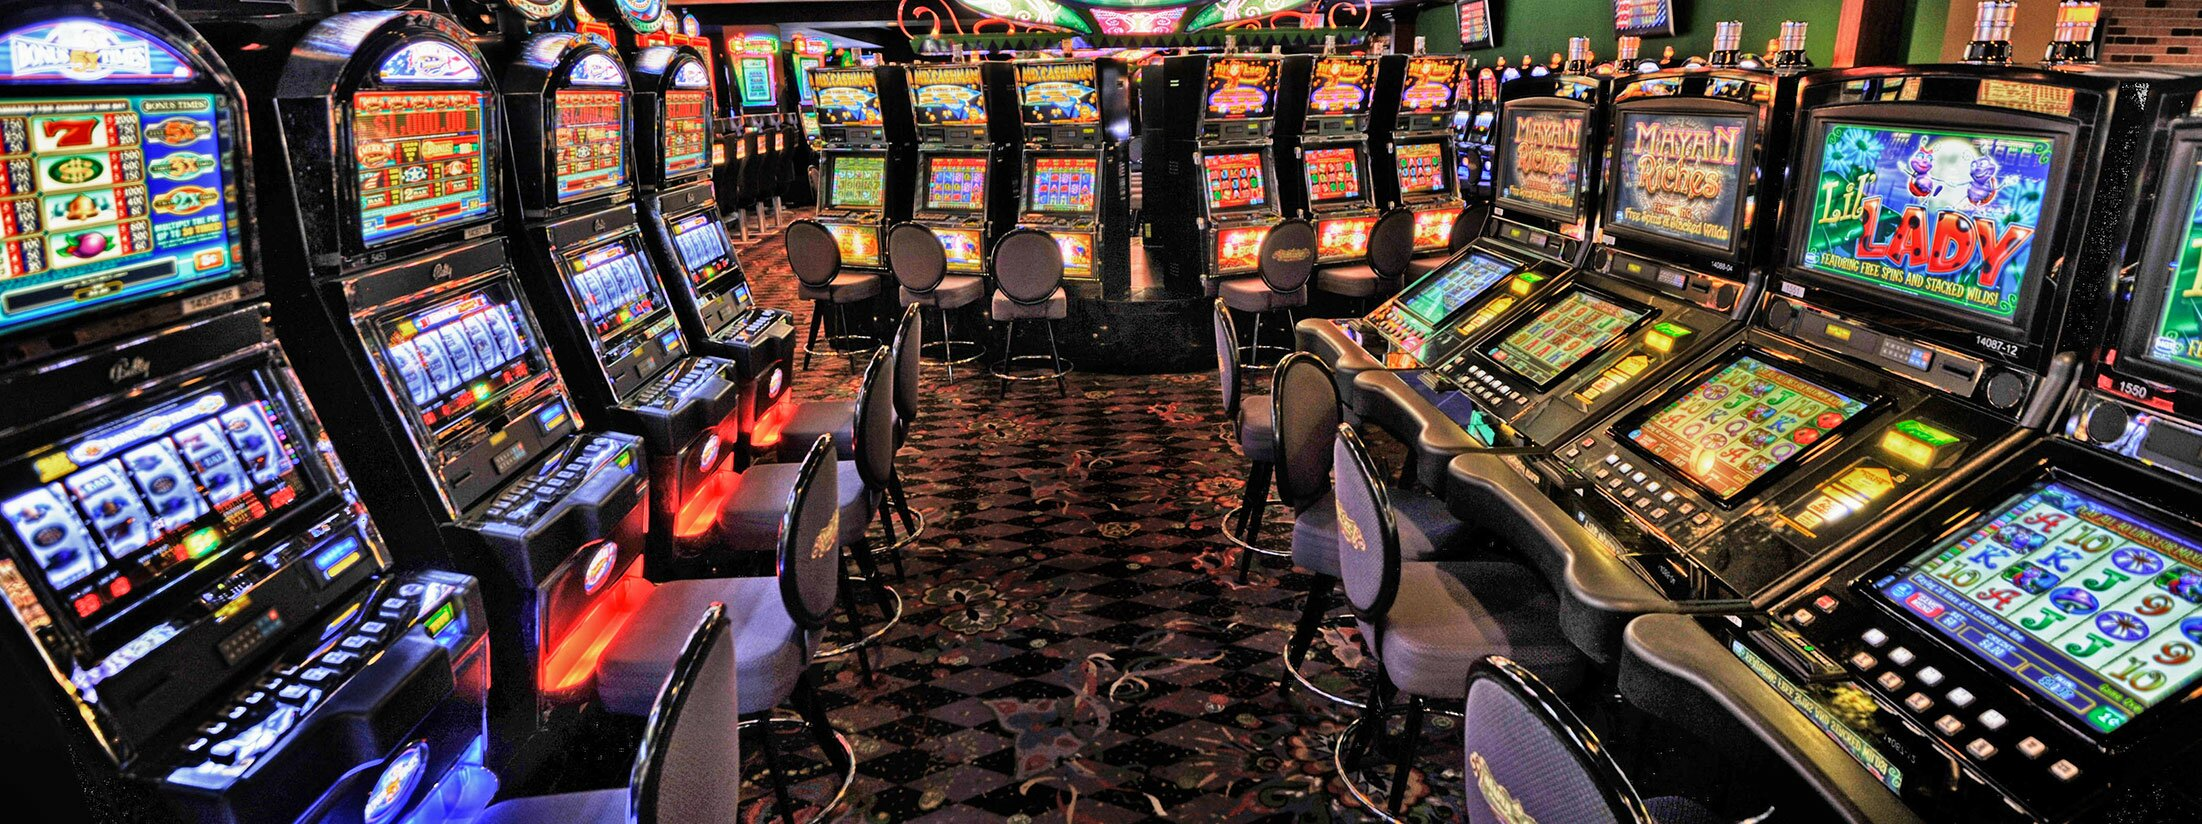 Top 10 slot machine games